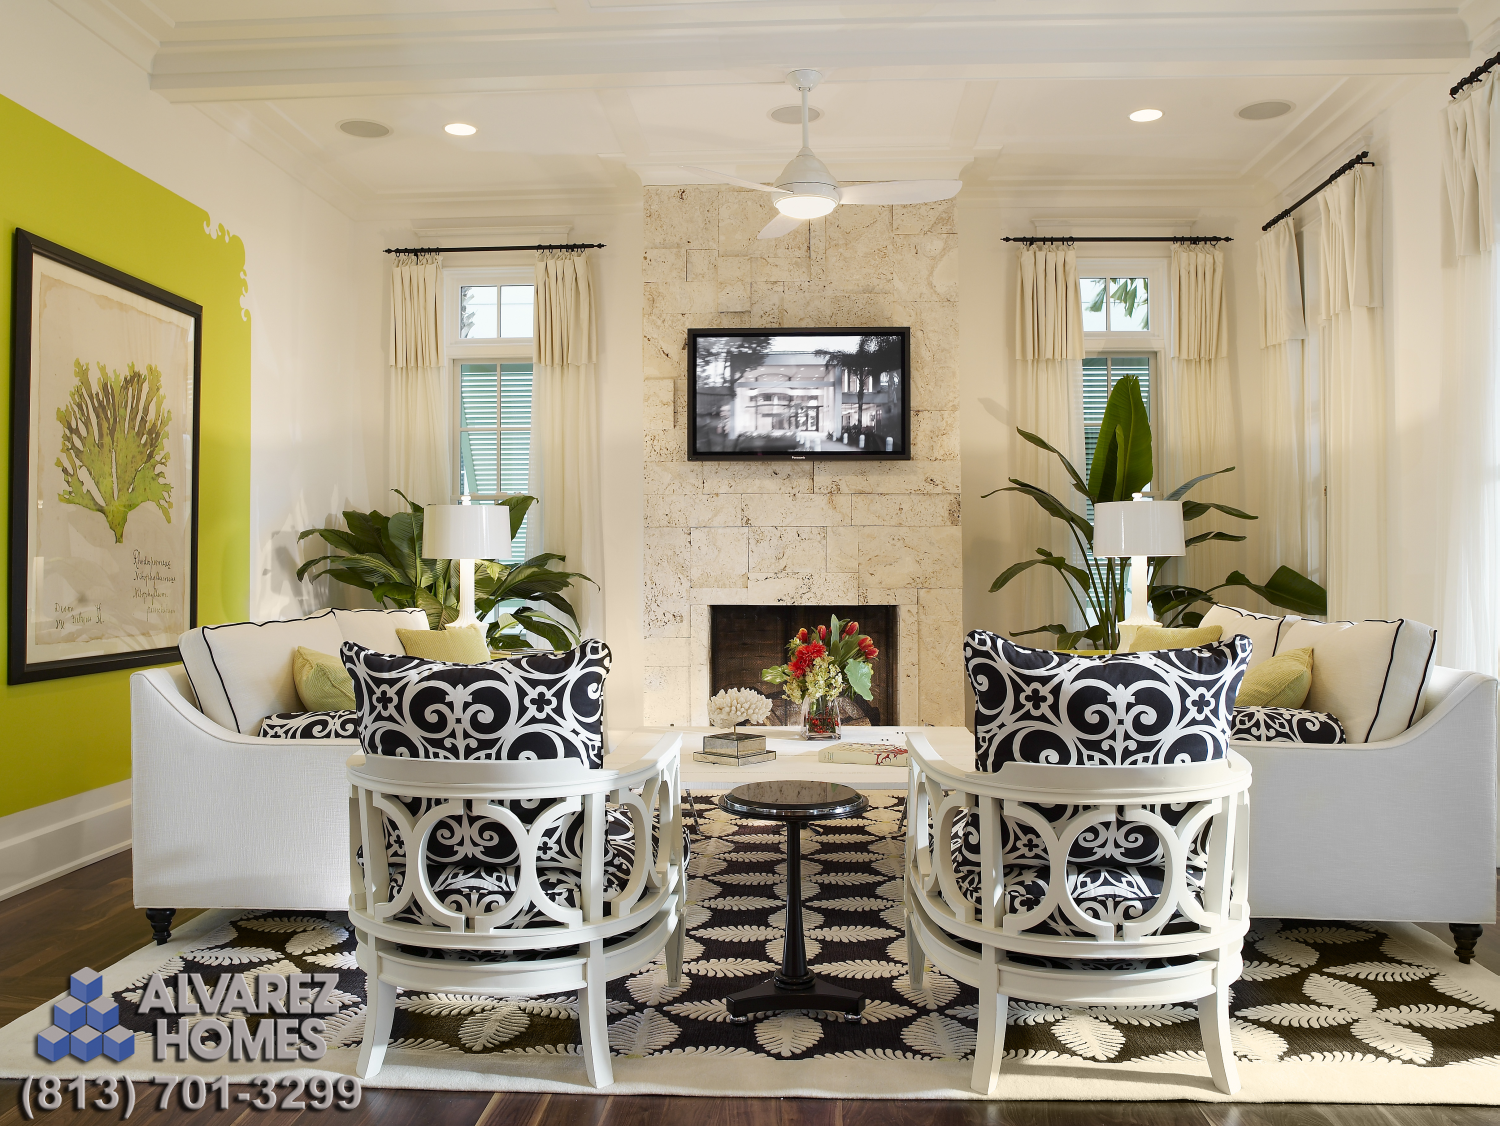 Tampa bay luxury homes builder alvarez homes designed and built this family room in the amber for Affordable interior design tampa